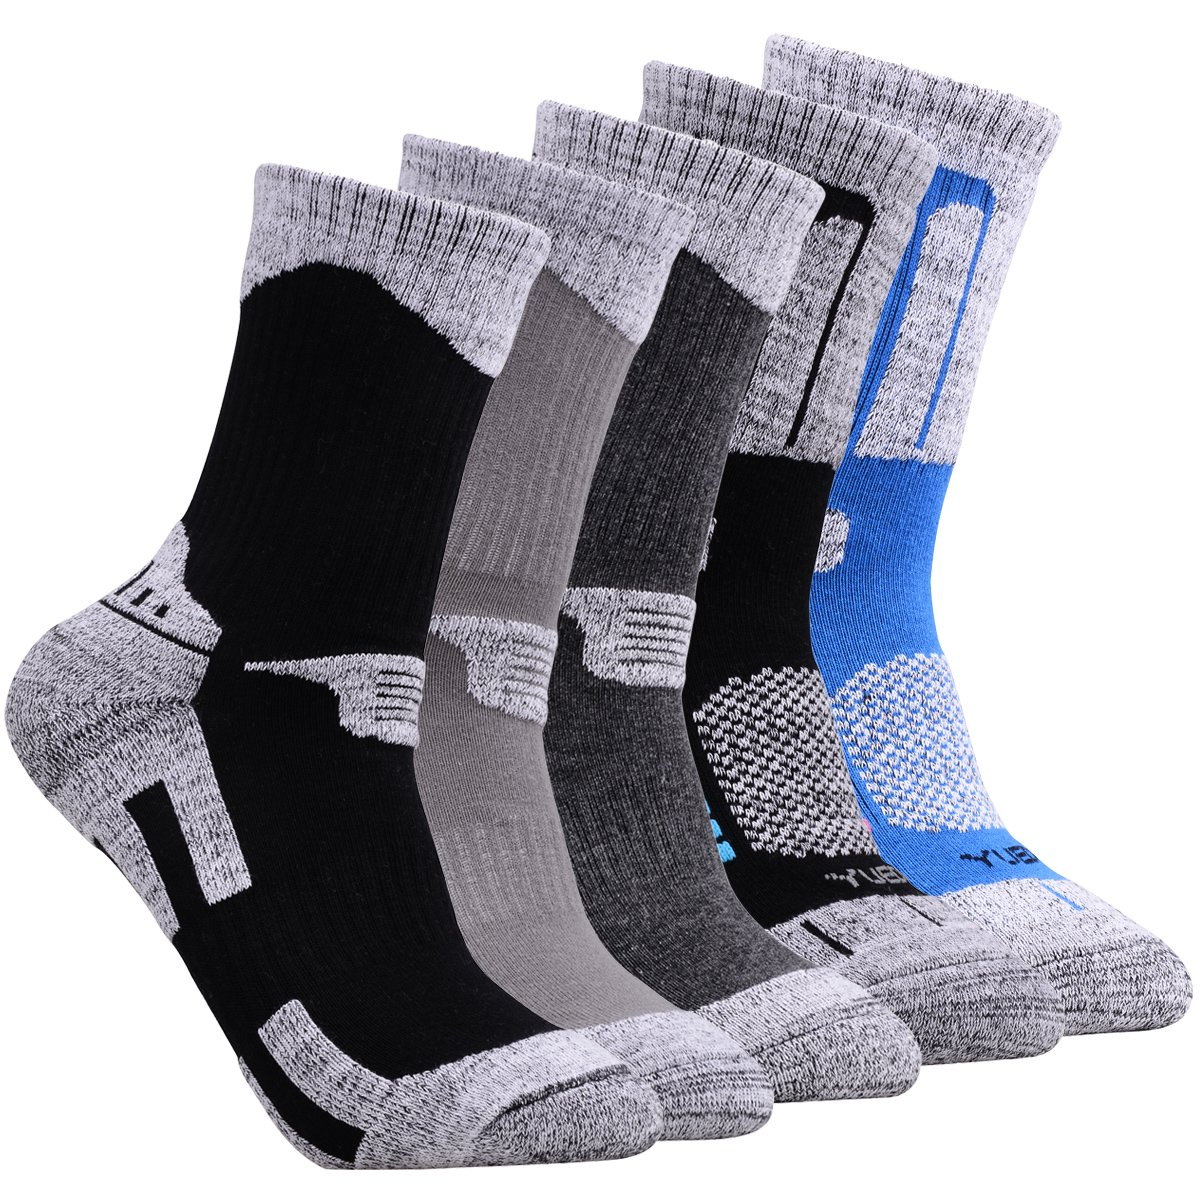 YUEDGE Men's 5 Pairs Wicking Cushion Outdoor Multi Performance Hiking Socks hm18055pca